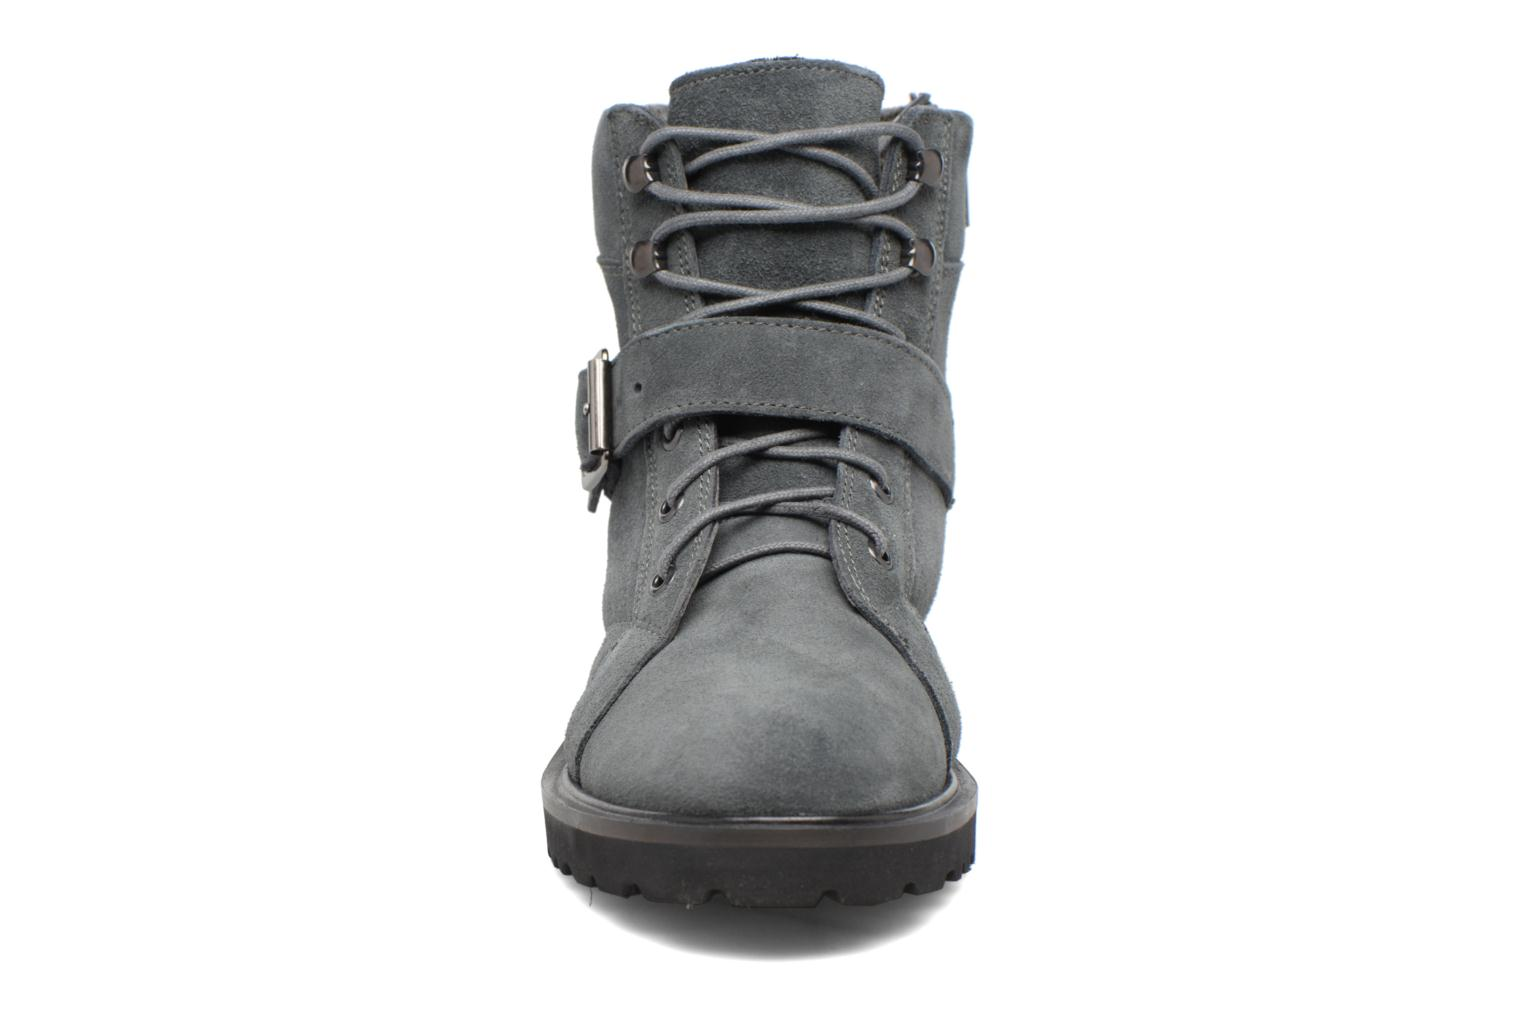 MEGEE BUCKLE BOOTIE Anthracite 2